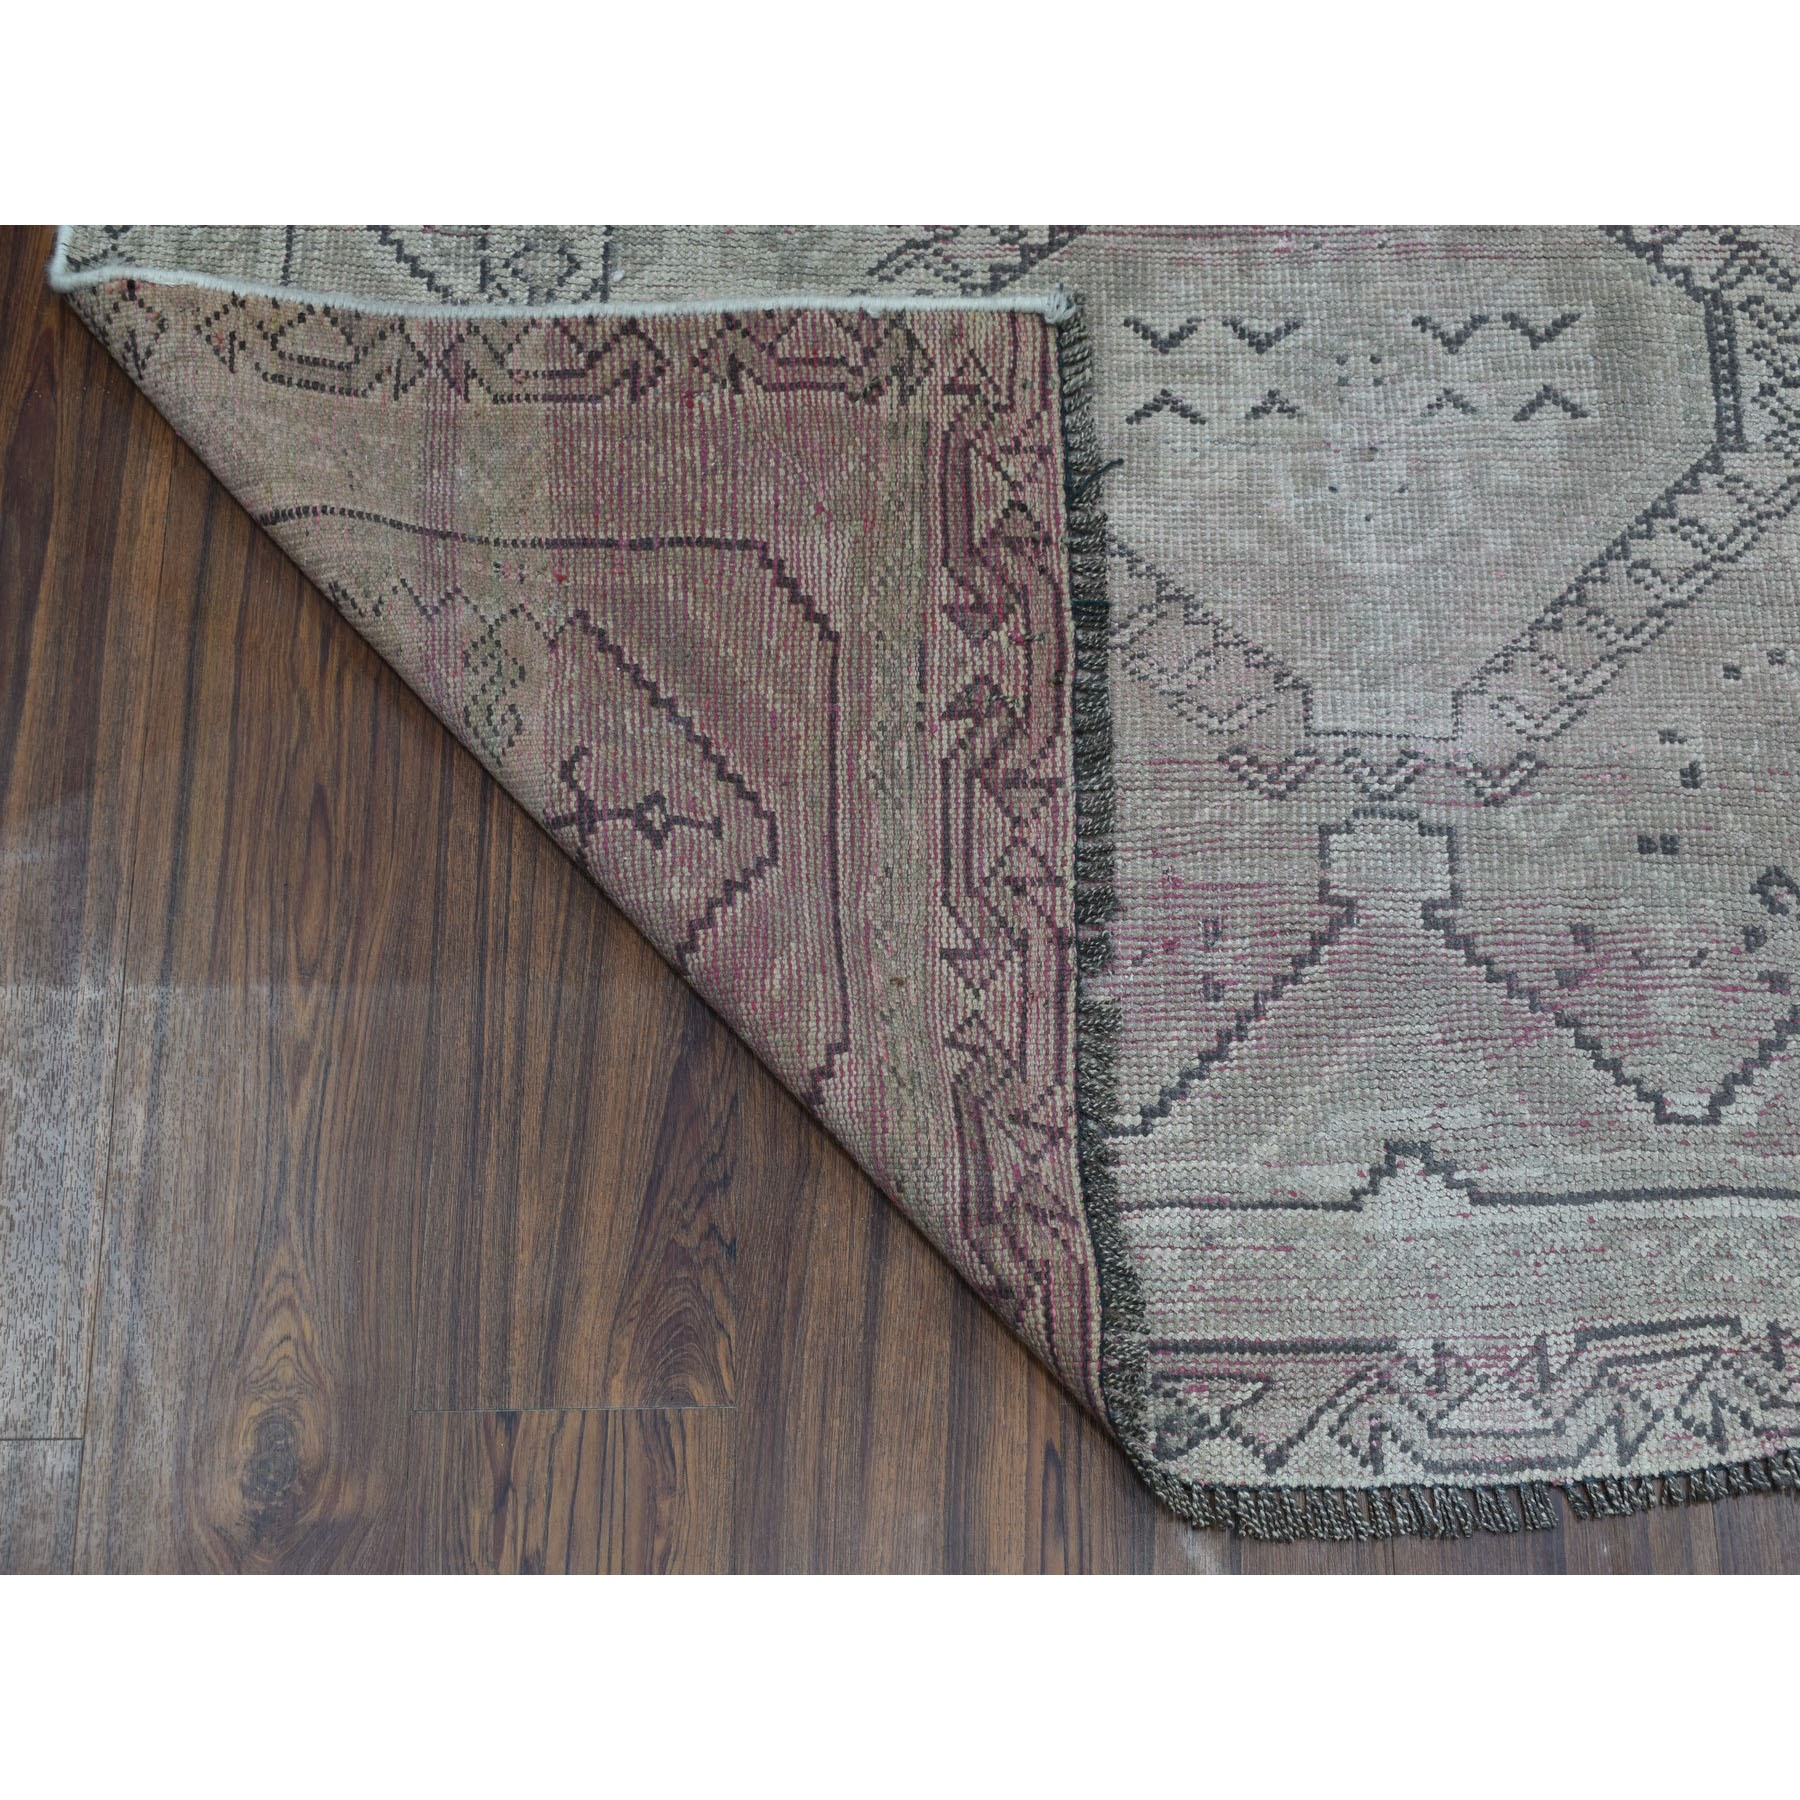 4-7 x8- Vintage And Worn Down Distressed Colors Persian Qashqai Hand Knotted Bohemian Rug